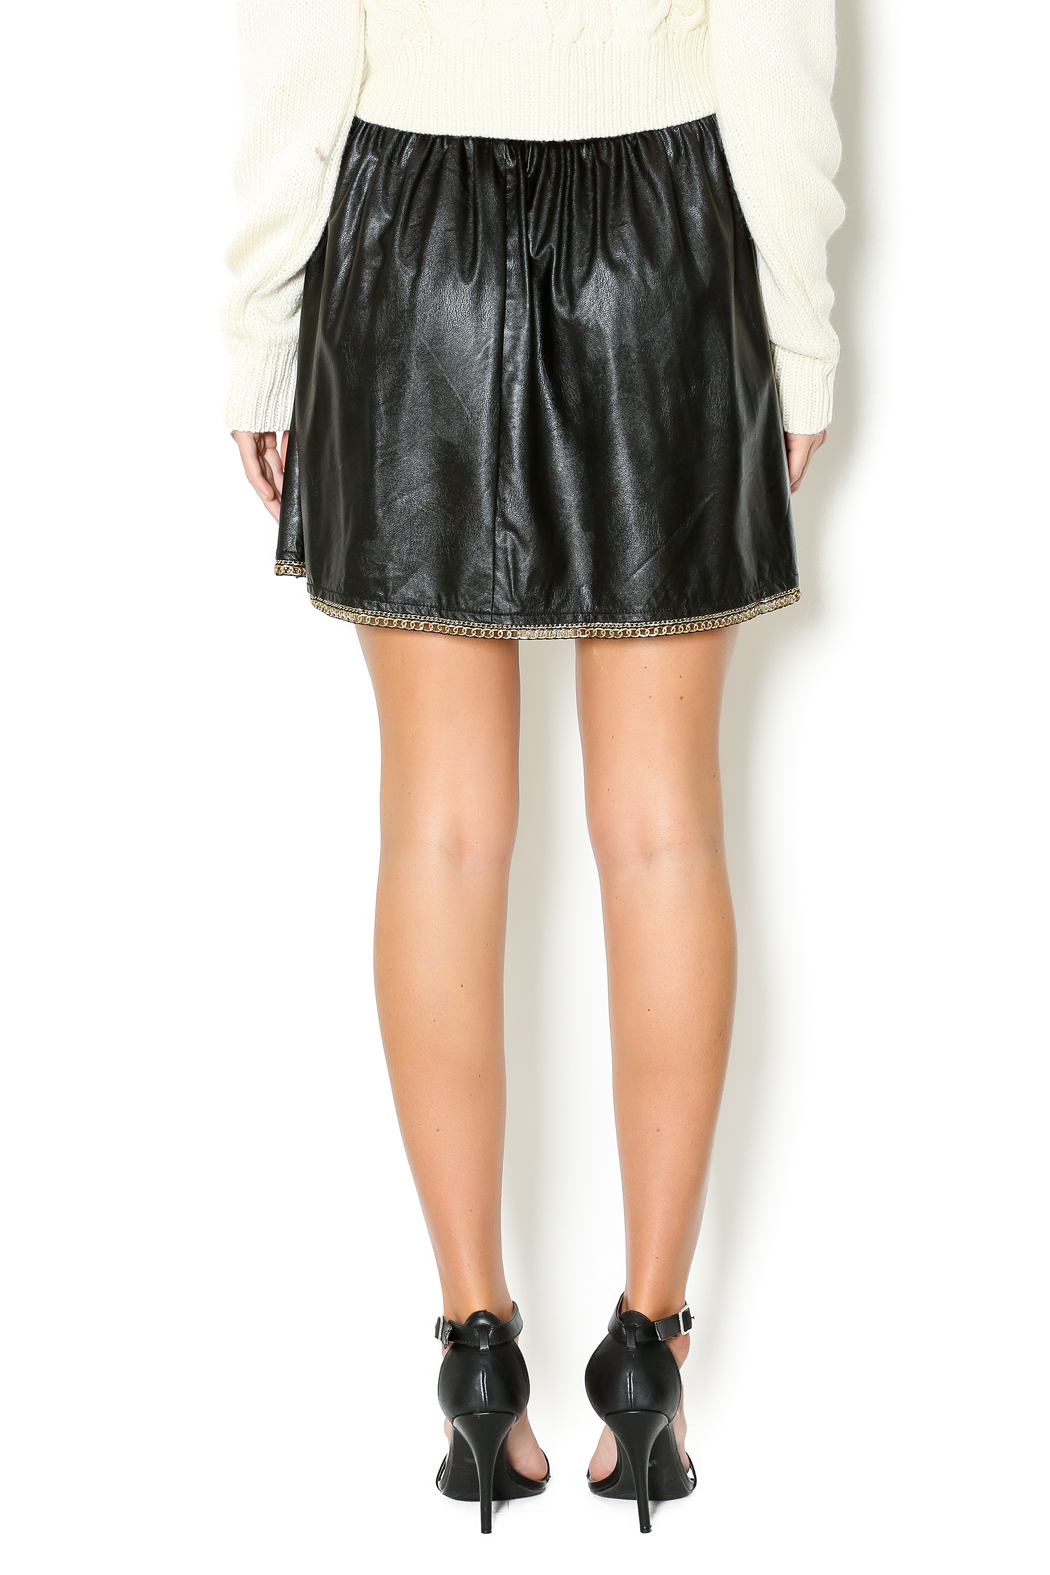 12 black leather skirt from louisiana by kate shoptiques